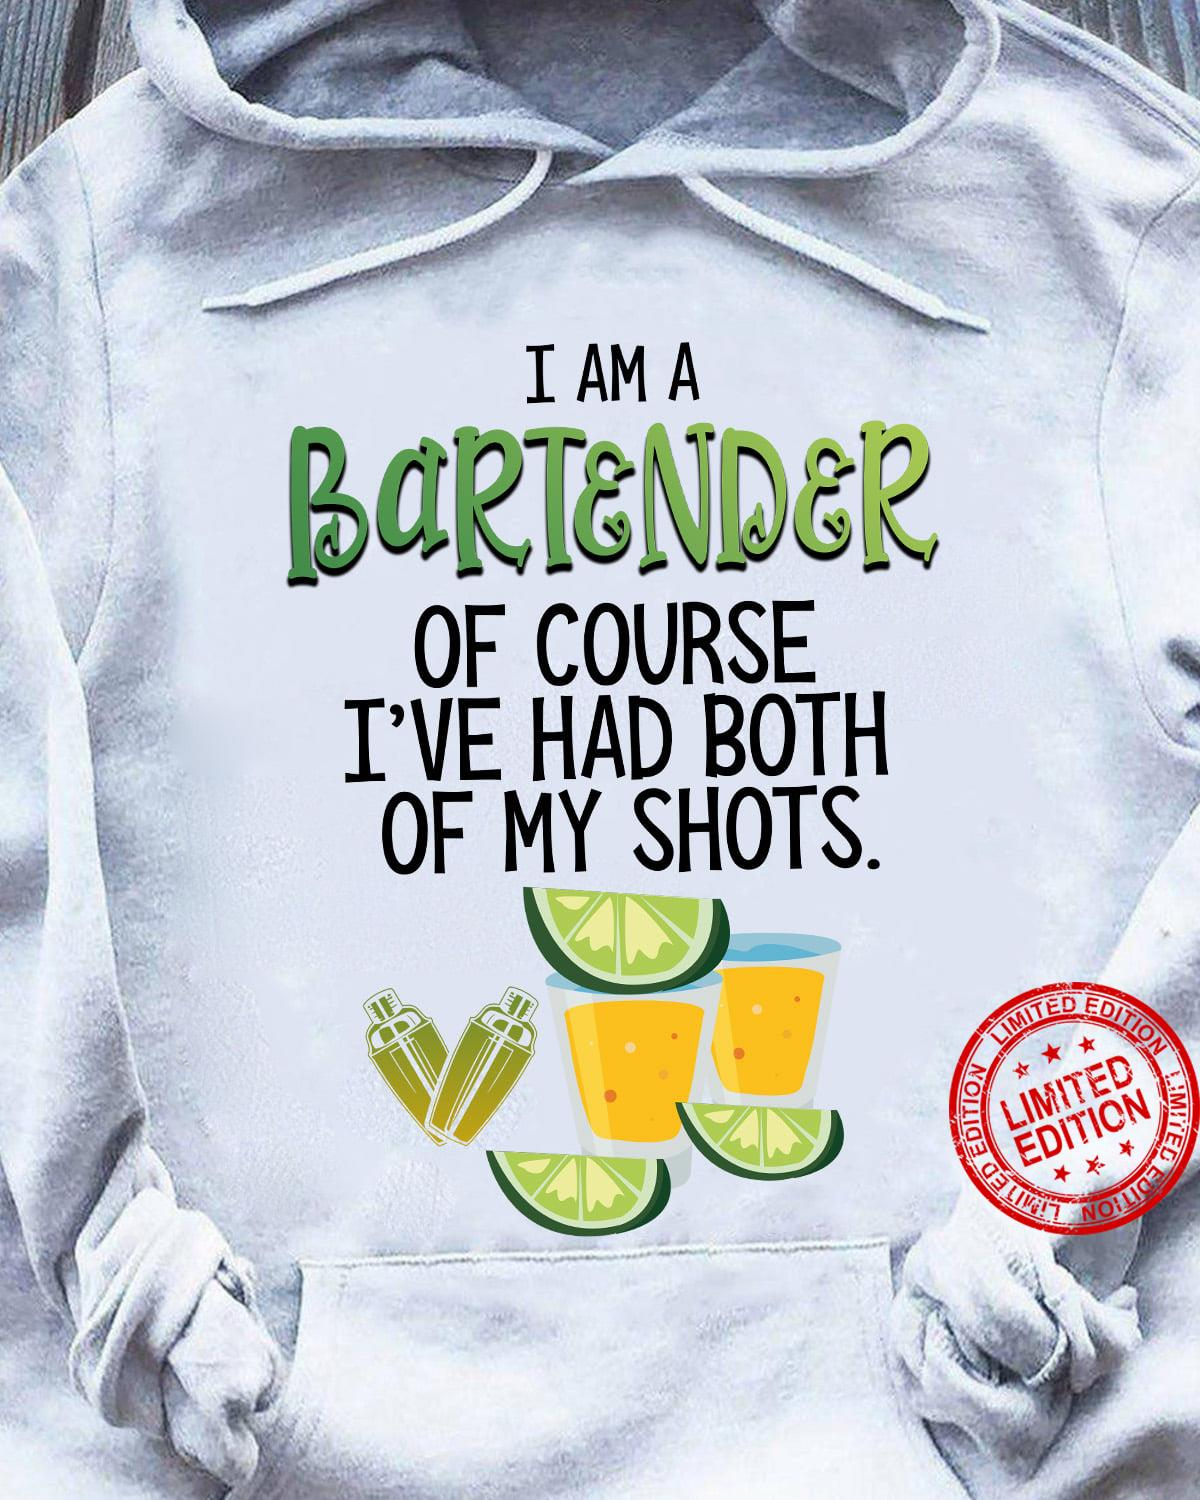 I Am A Bartender Of Course I've Had Both Of My Shots Shirt